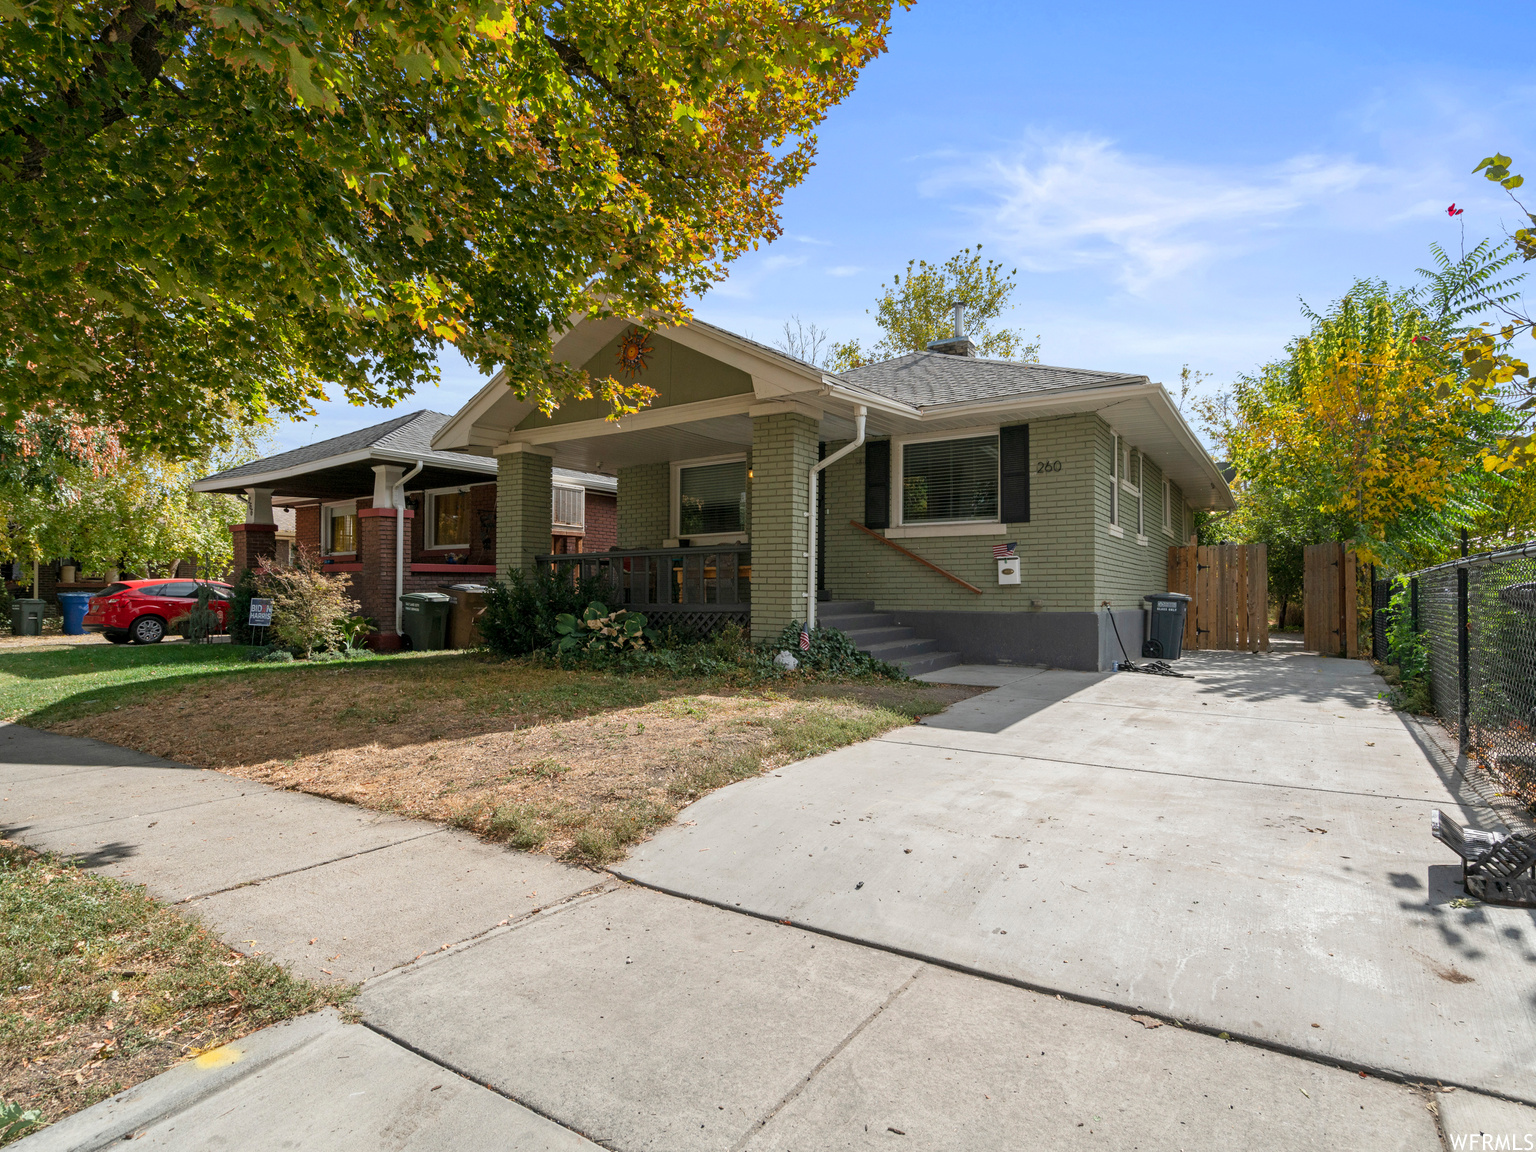 260 E HERBERT AVE, Salt Lake City UT 84111